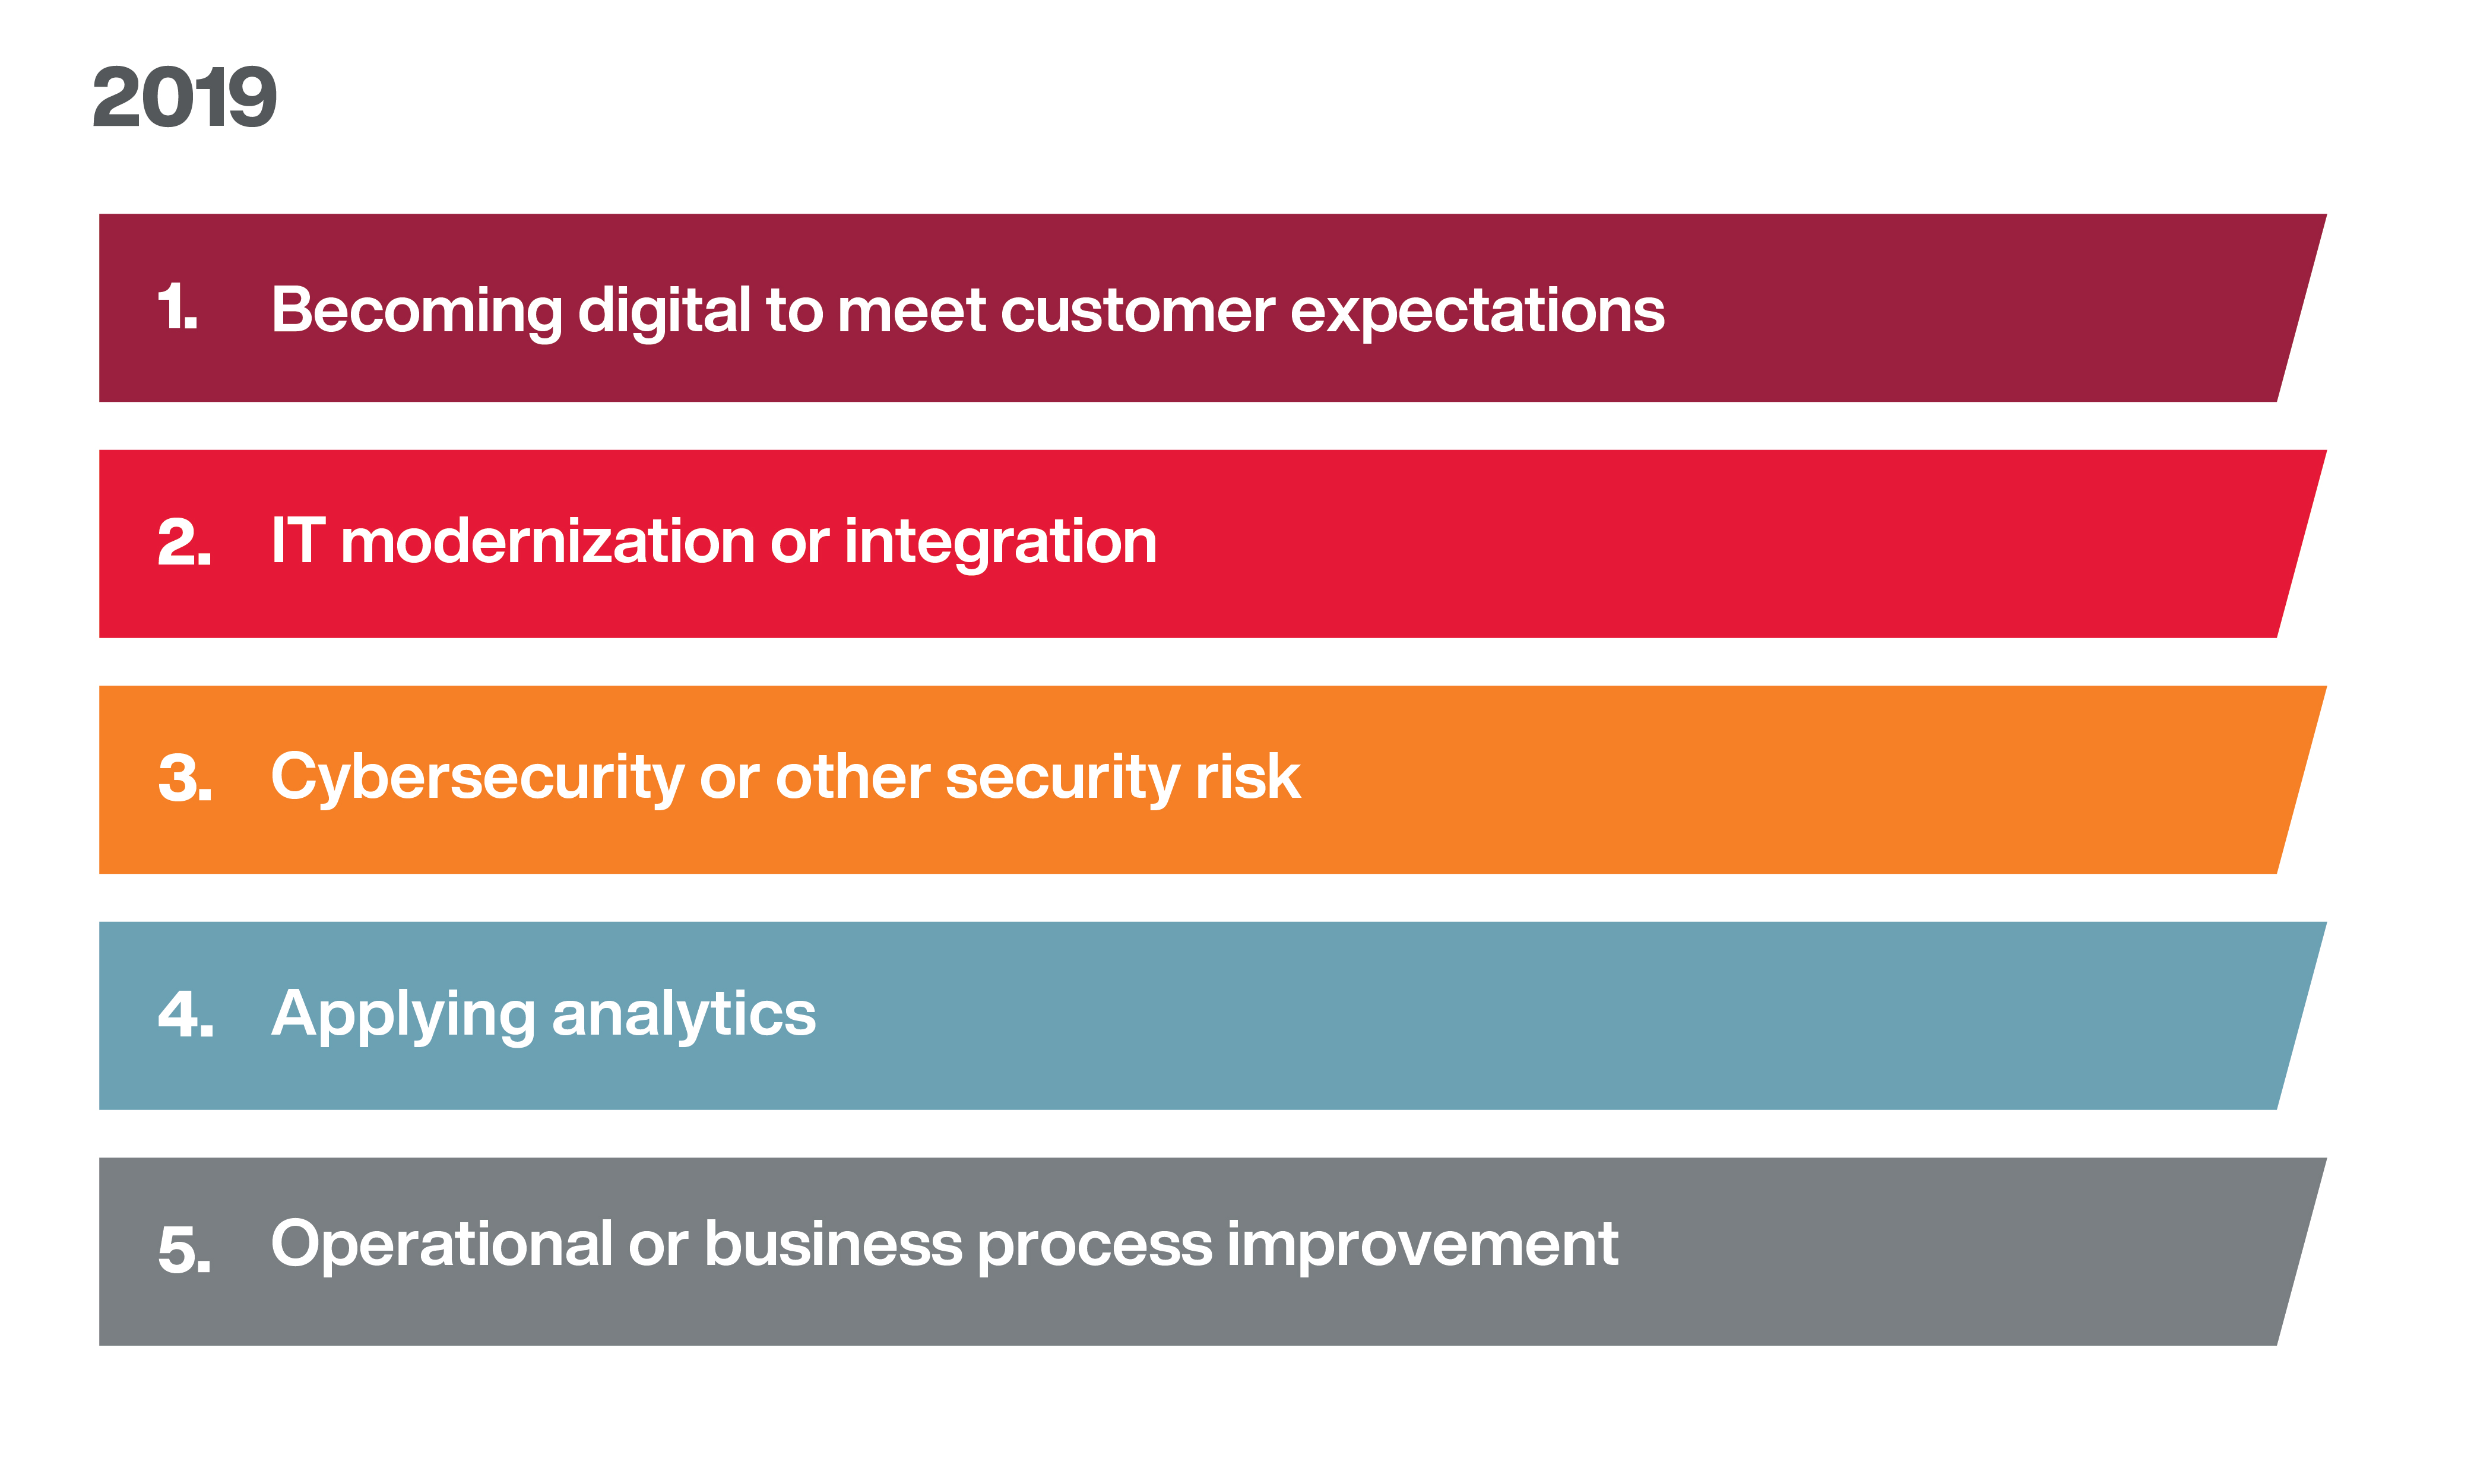 2019 top trends by impact - Becoming digital to meet customer expectations remains the highest-impact trend